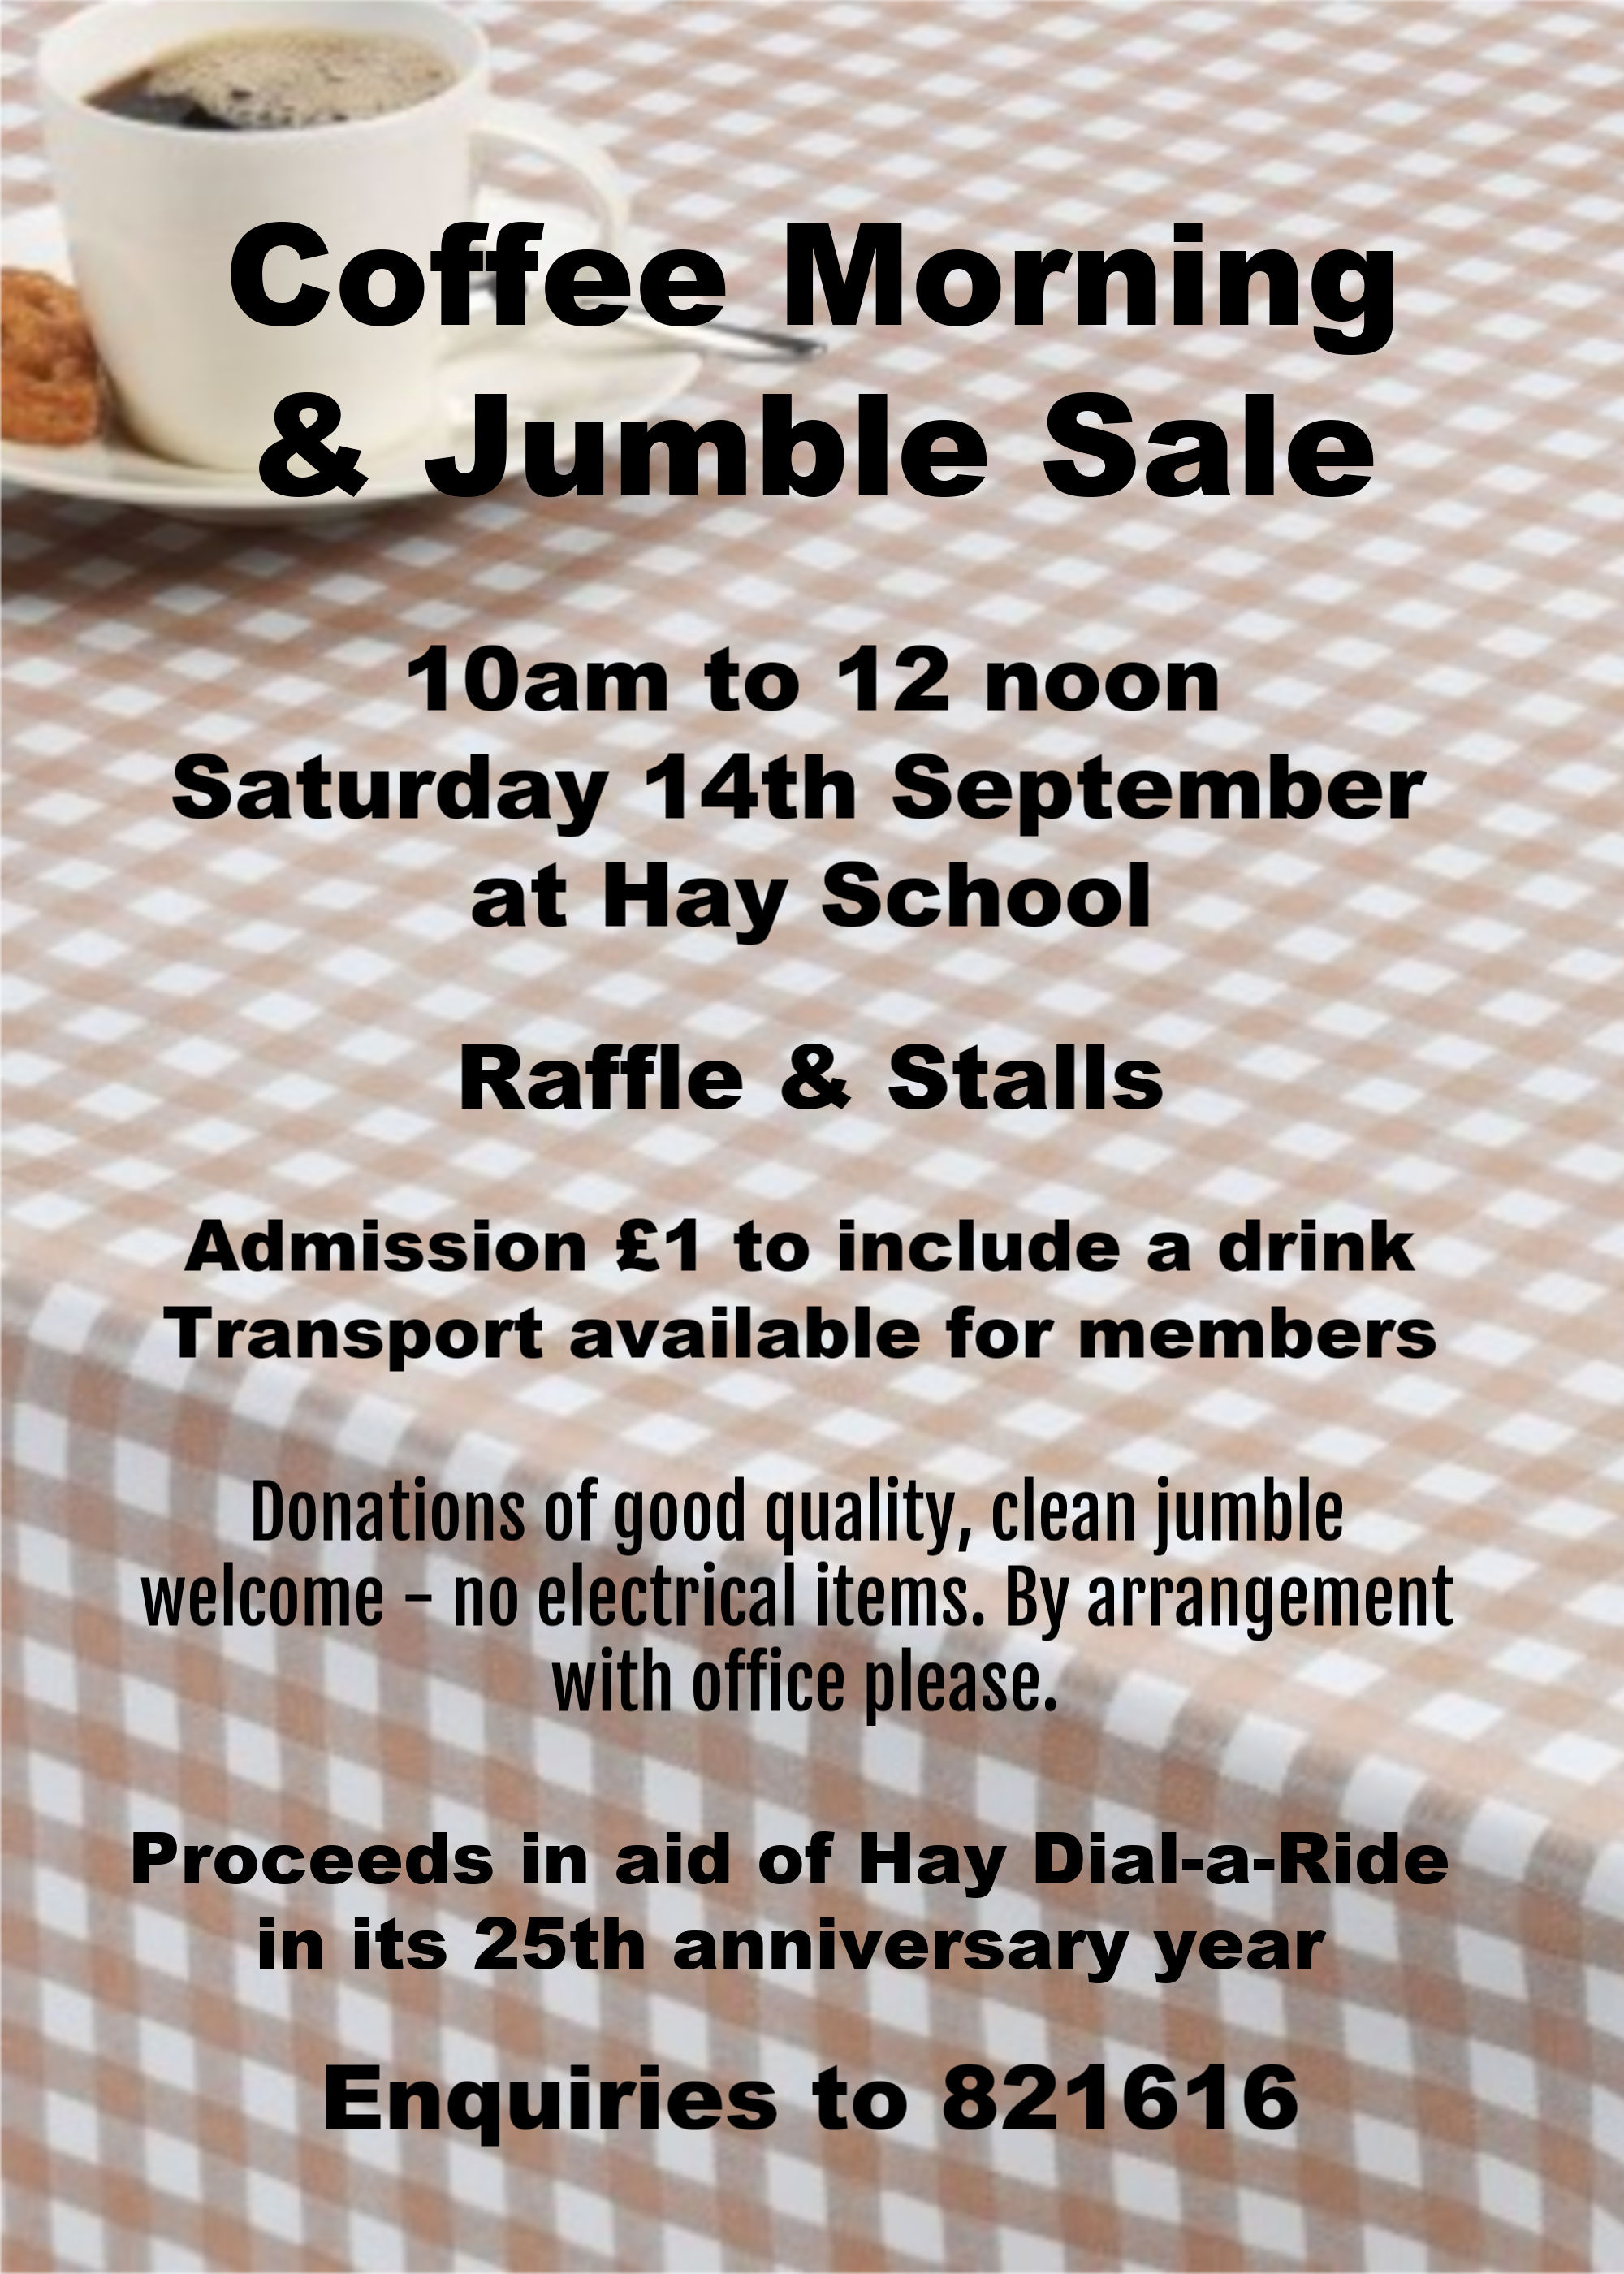 Coffee Morning & Jumble Sale